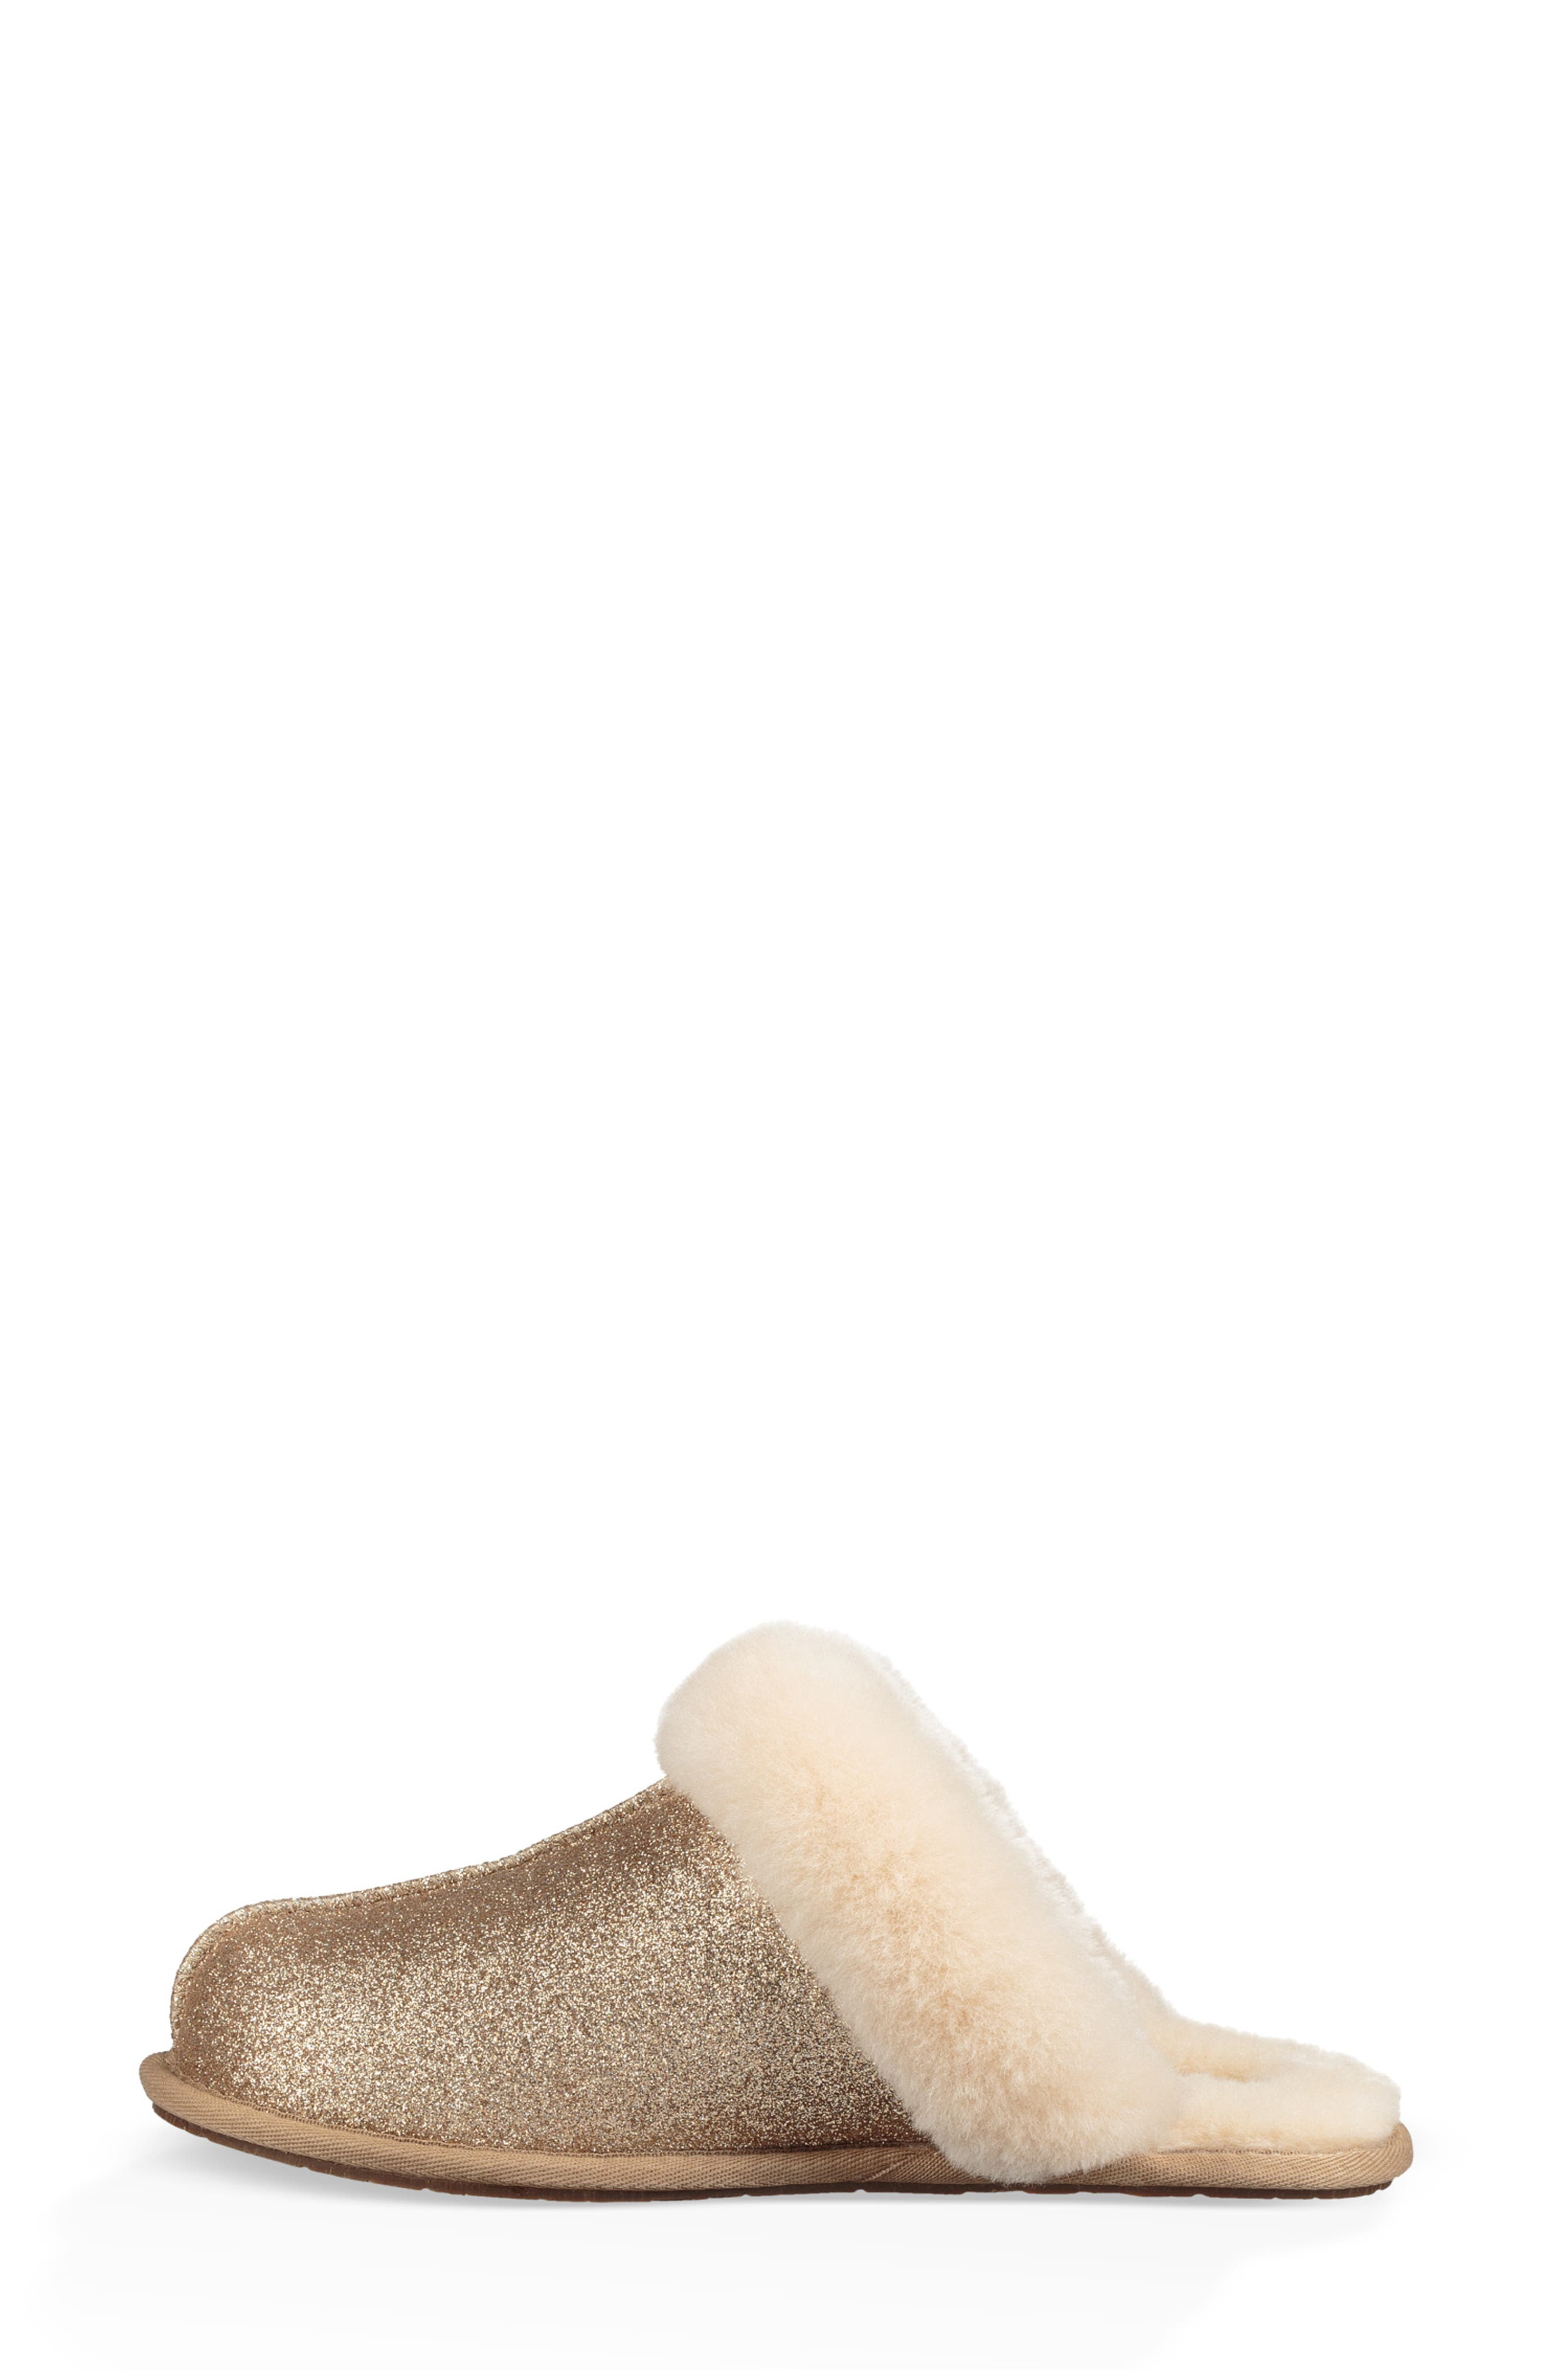 UGG<SUP>®</SUP>, Scuffette II Sparkle Genuine Shearling Slipper, Alternate thumbnail 6, color, GOLD